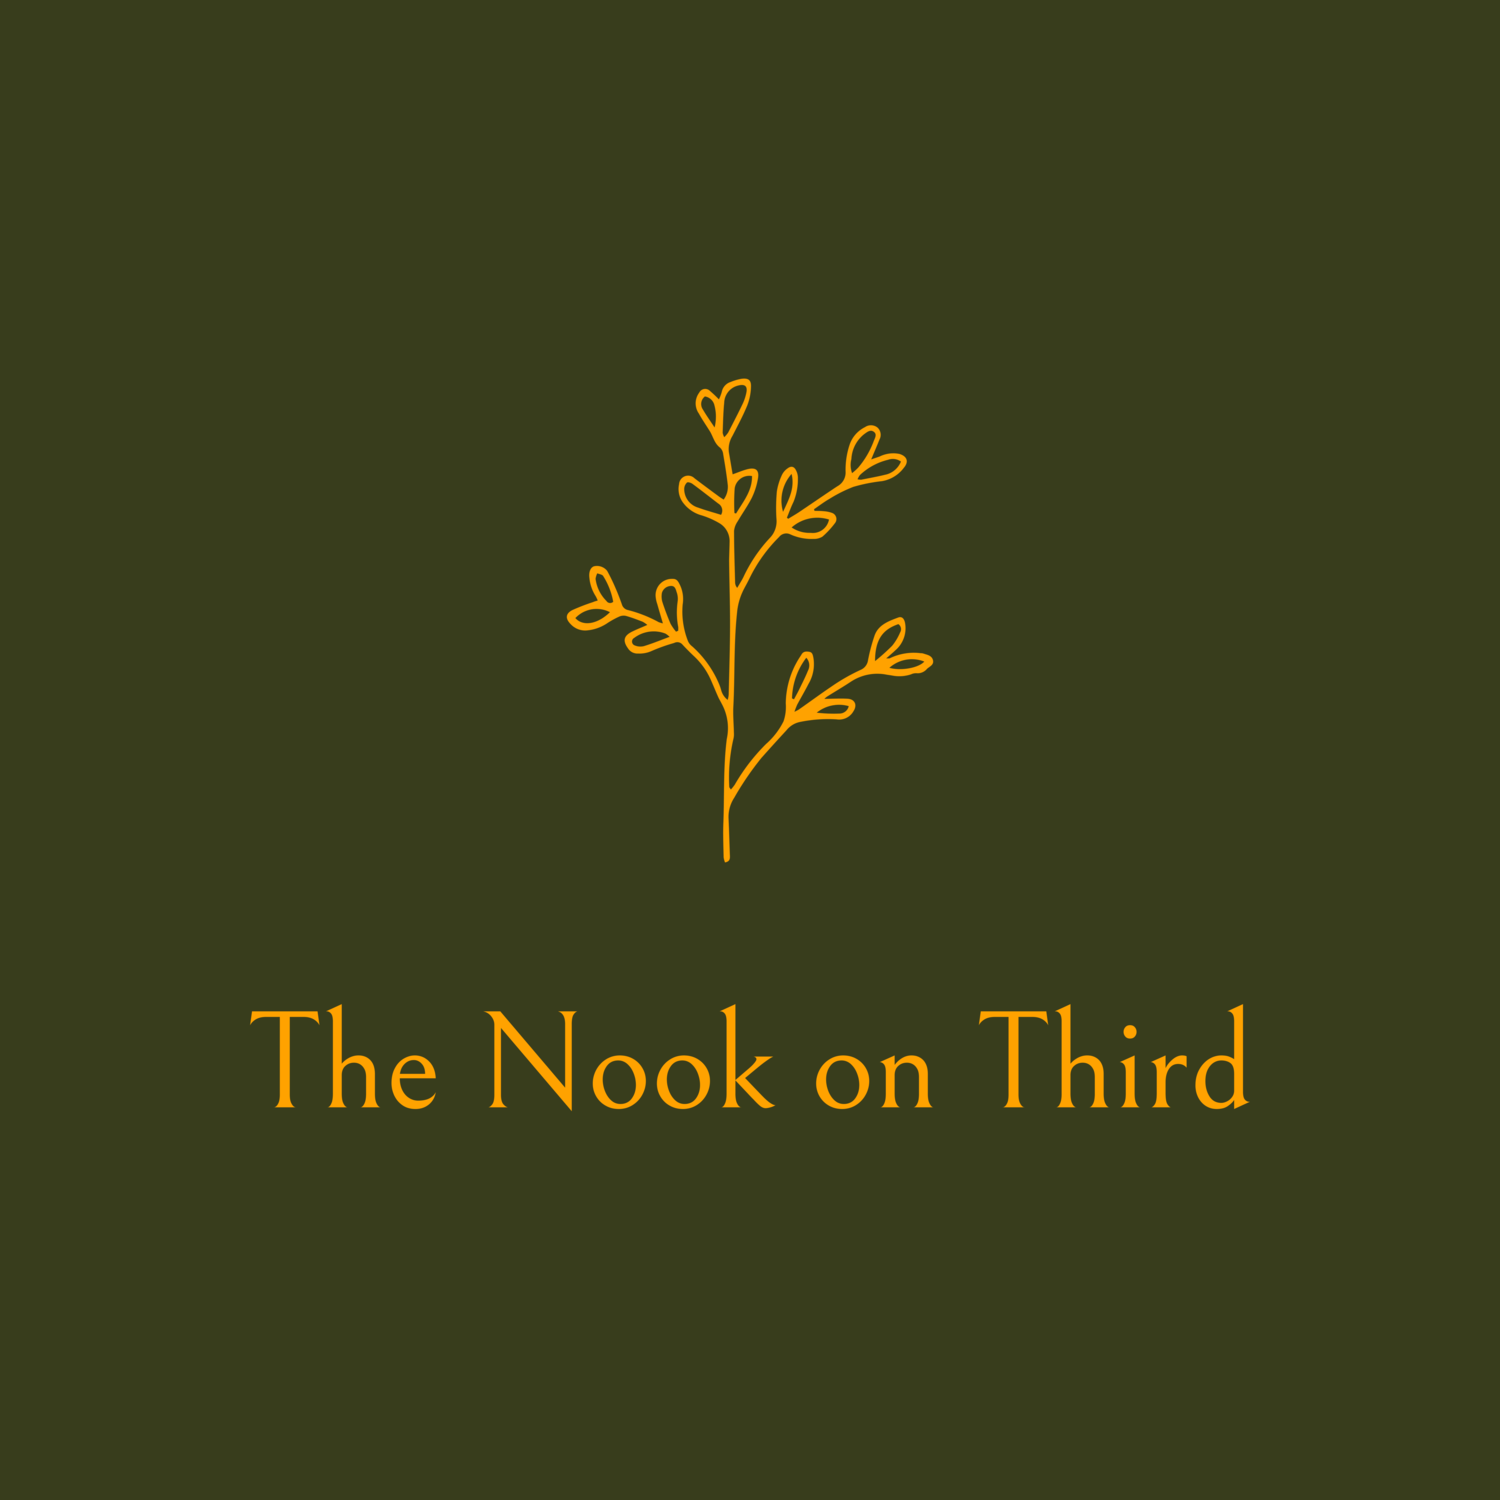 The Nook on Third